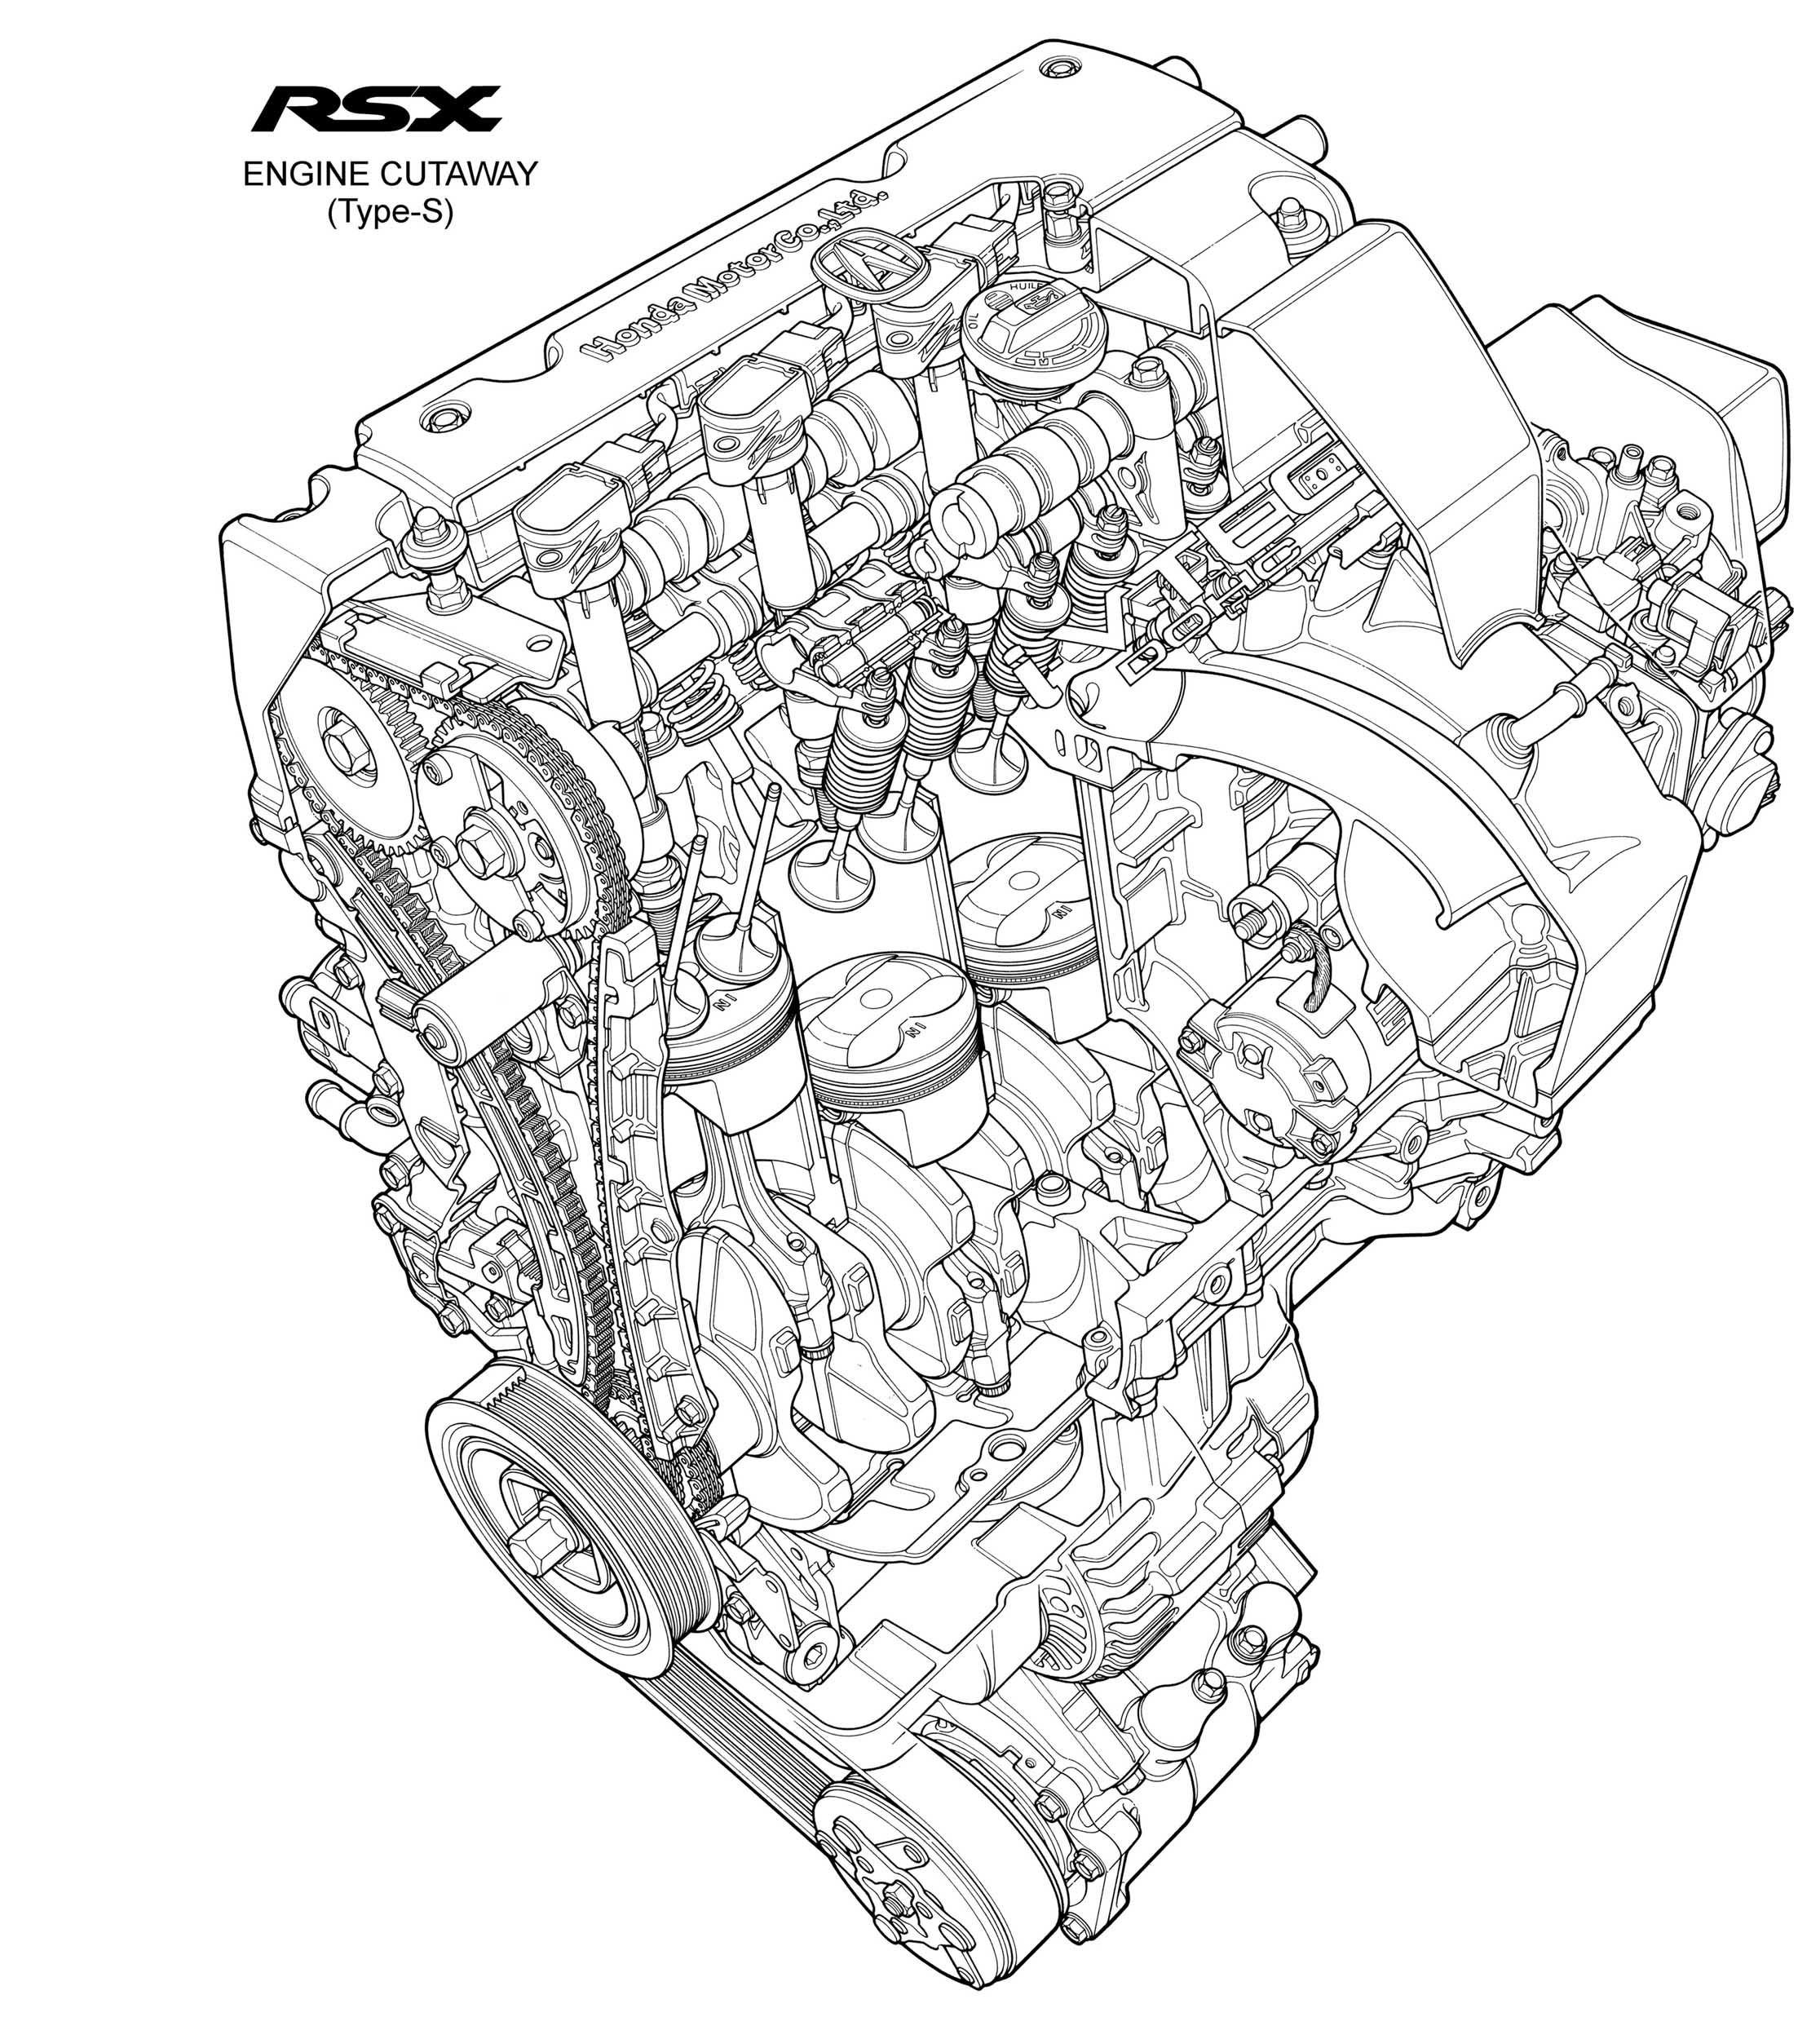 2002 Acura RSX Type S Engine Cutaway